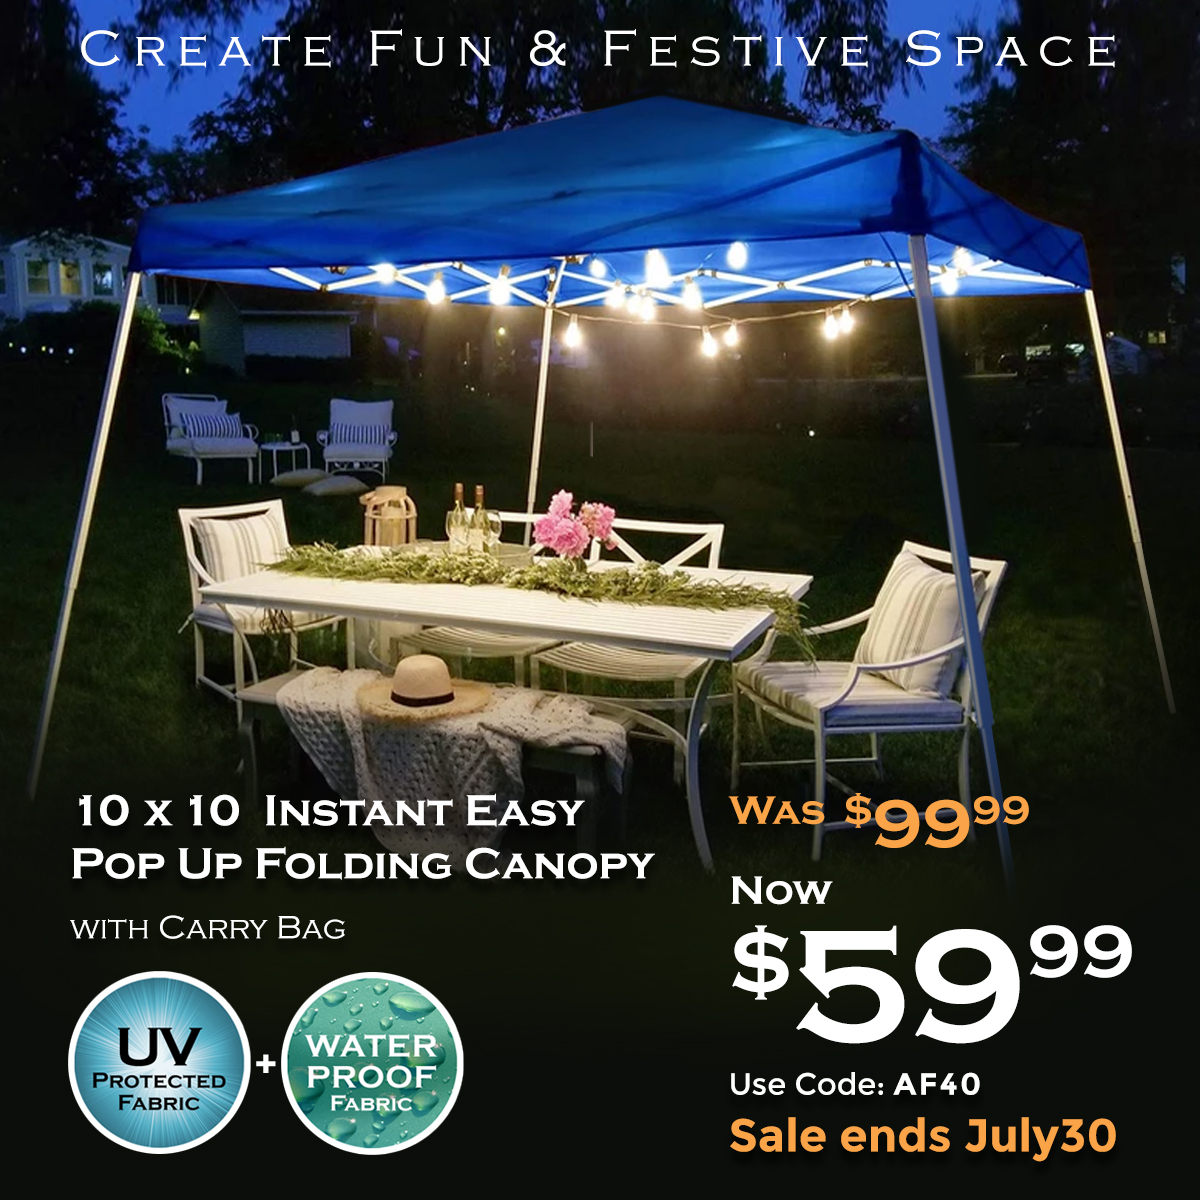 $40 Off! 10 X 10 Instant Easy Pop Up Folding Canopy Hot Sale! Use Code AF40. Ends 7/30/2019.